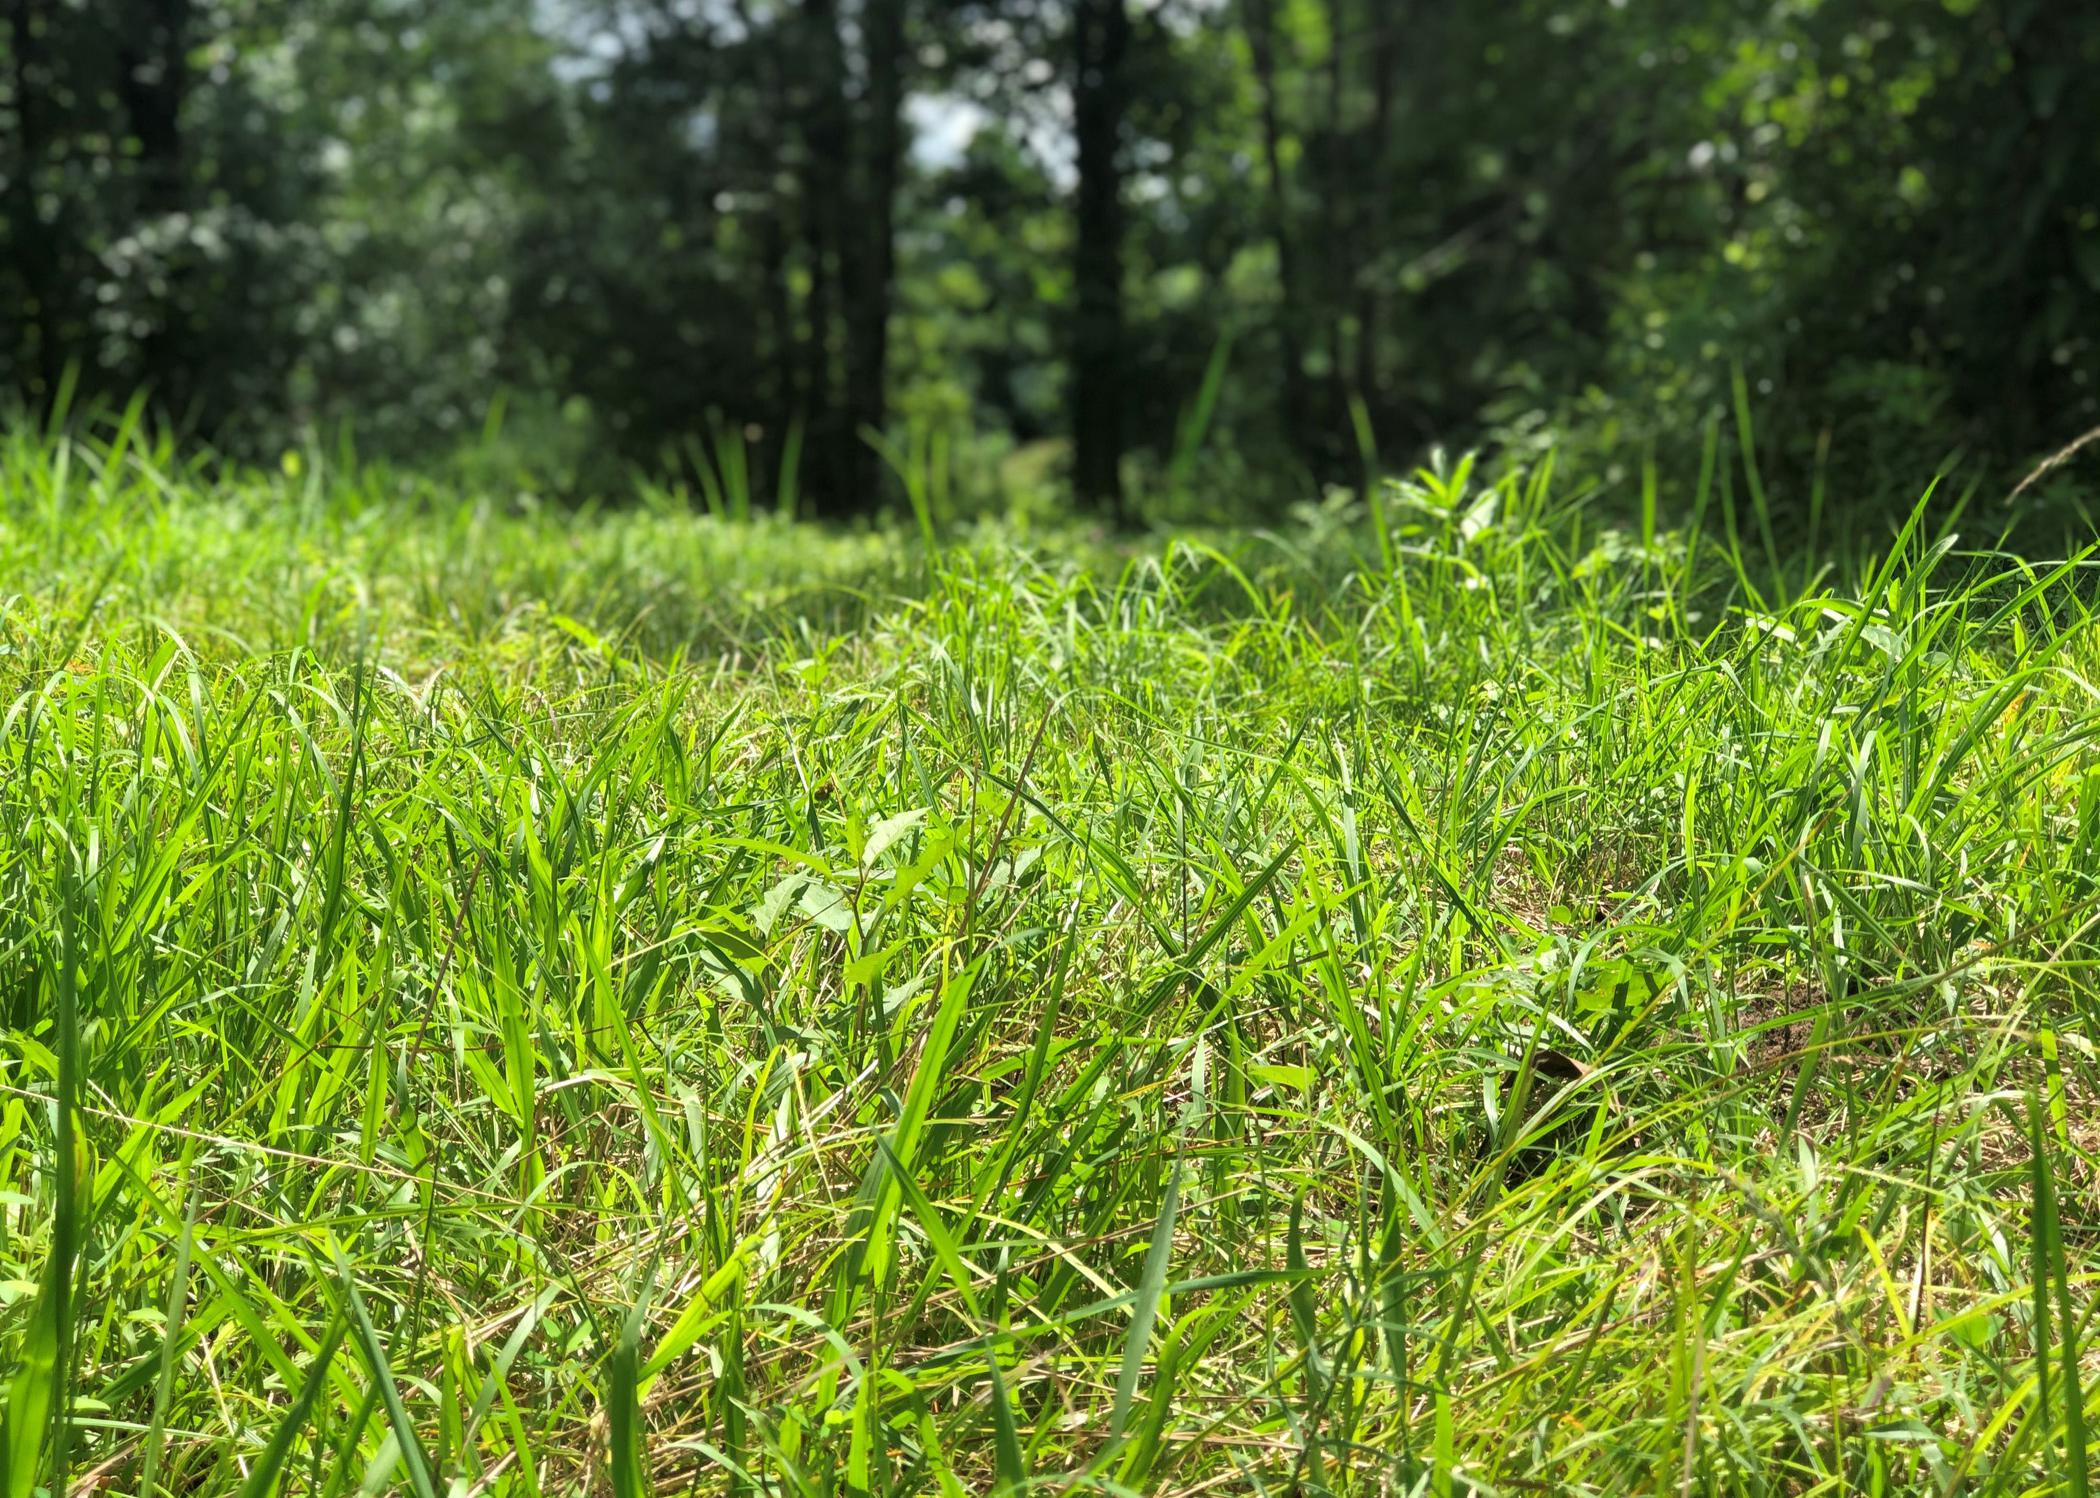 A close-up of tall grass with trees in the background.